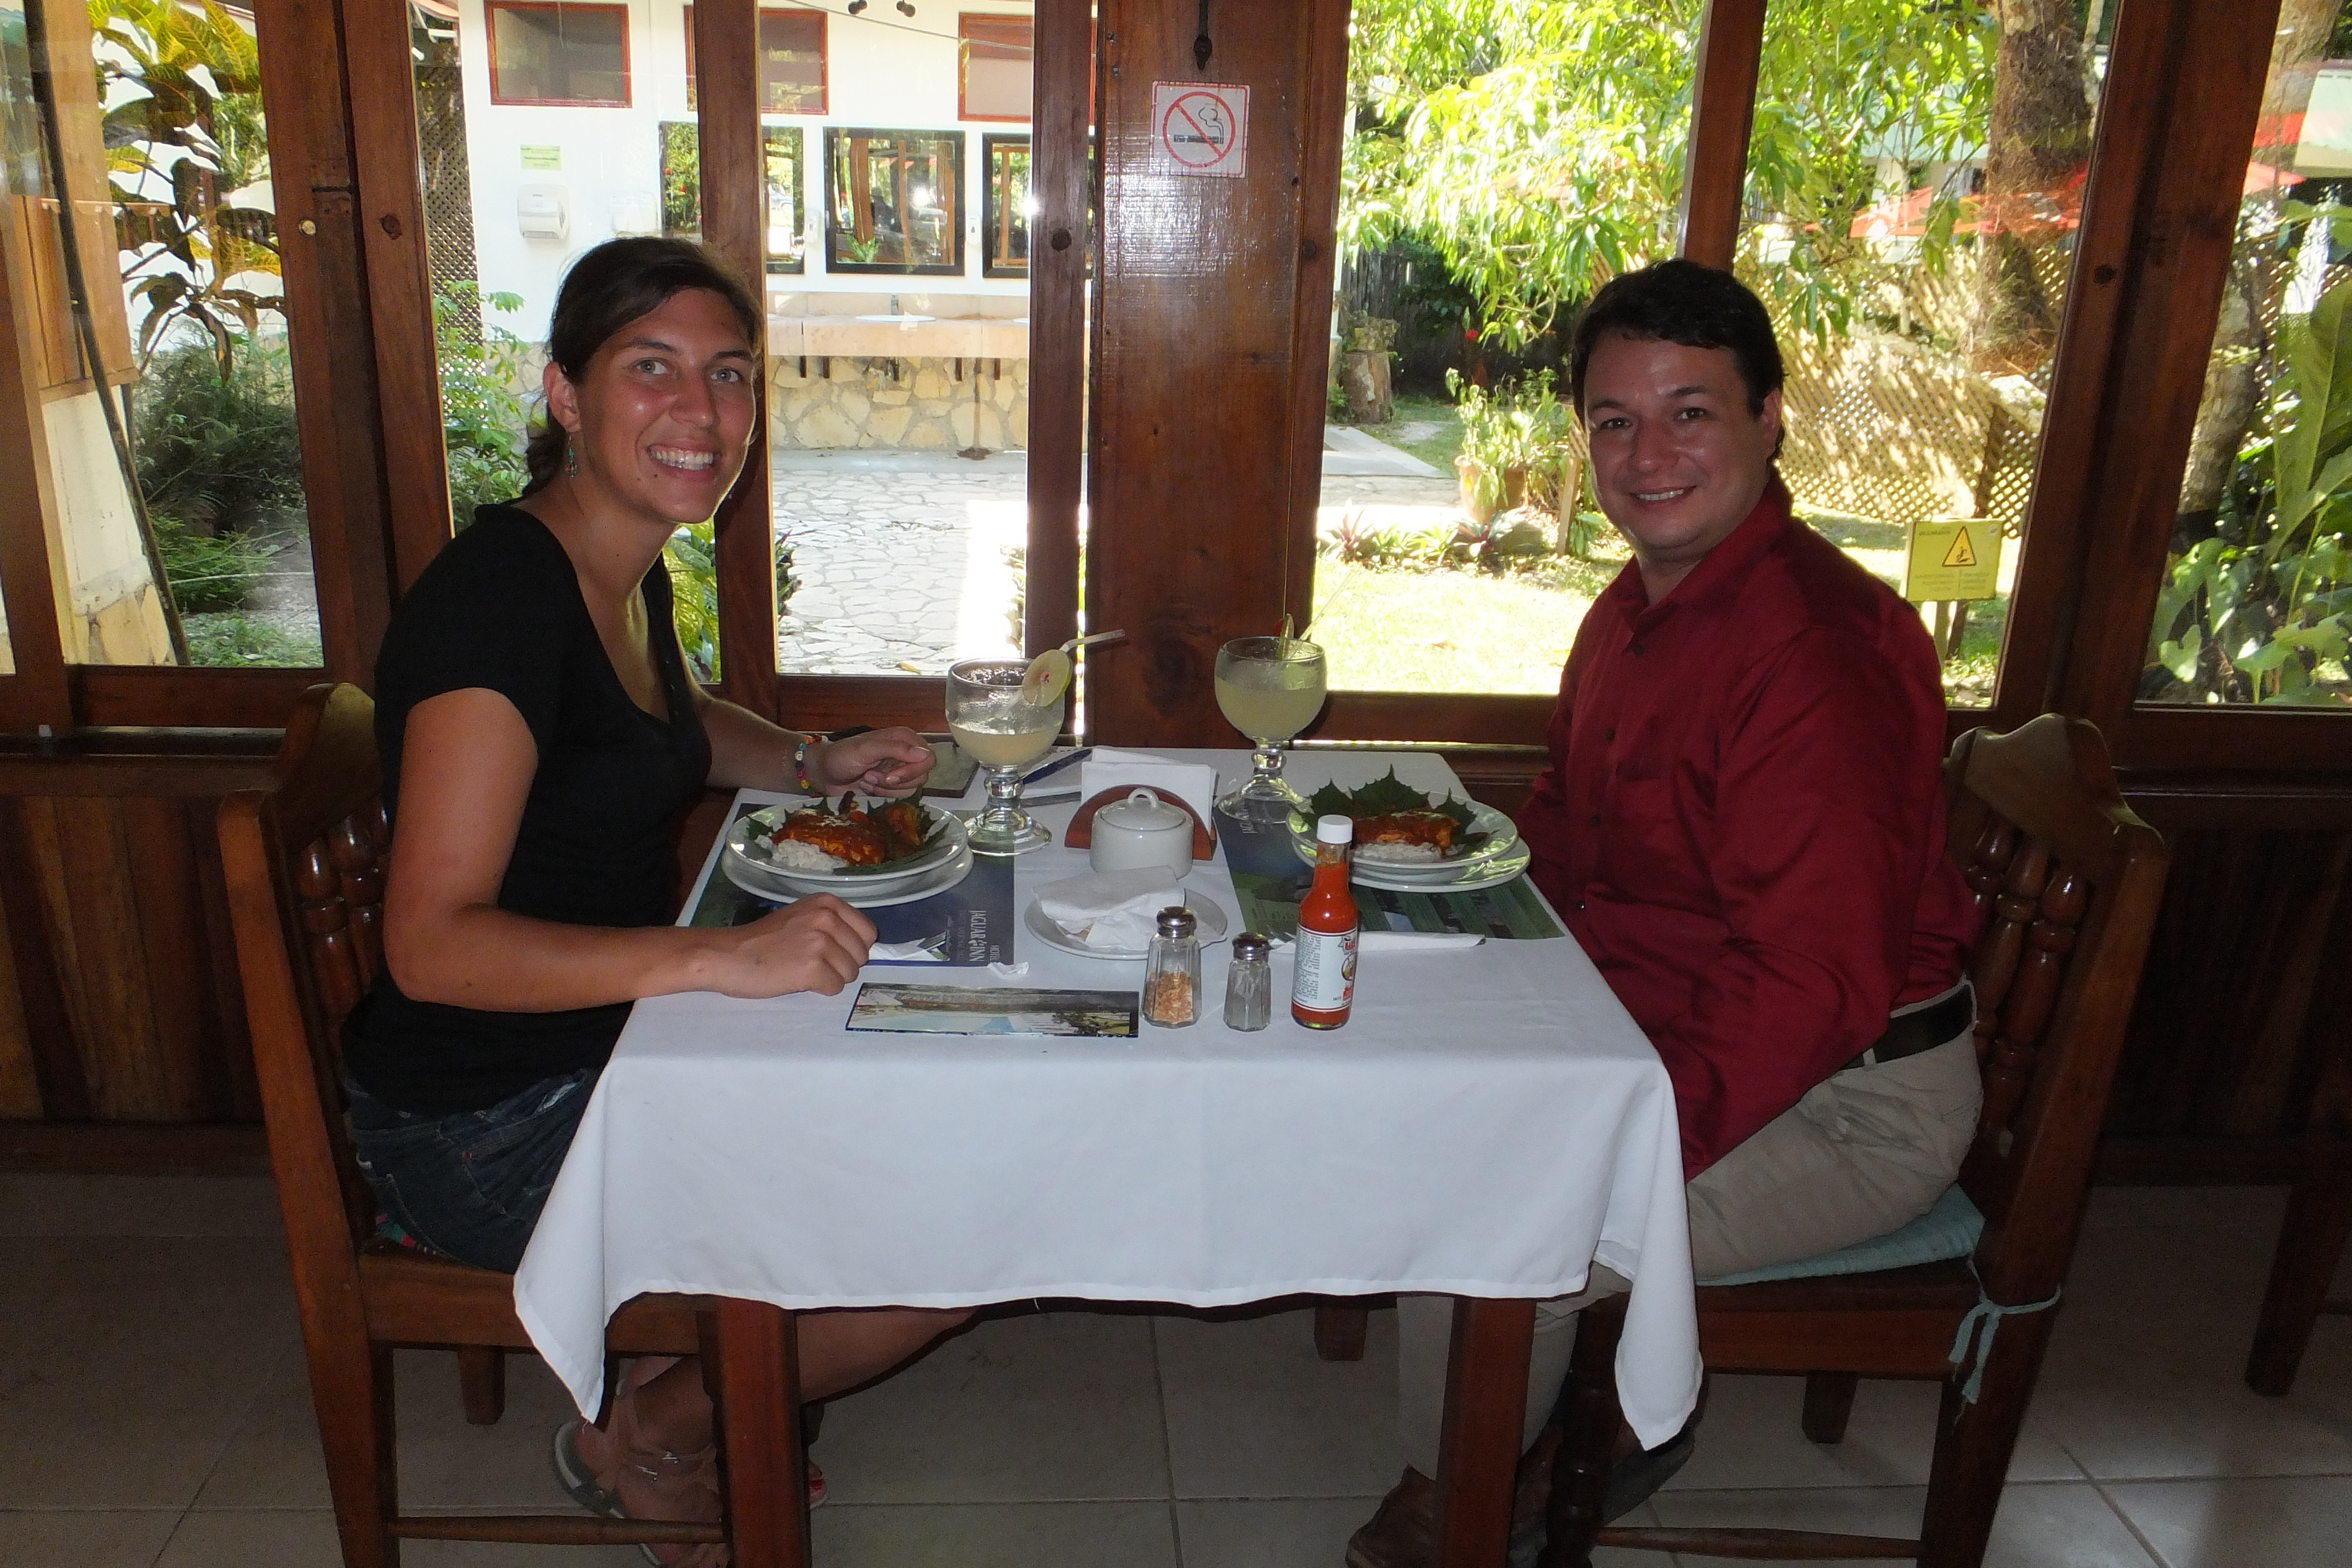 Lunch Time at Hotel Jaguar Inn Tikal